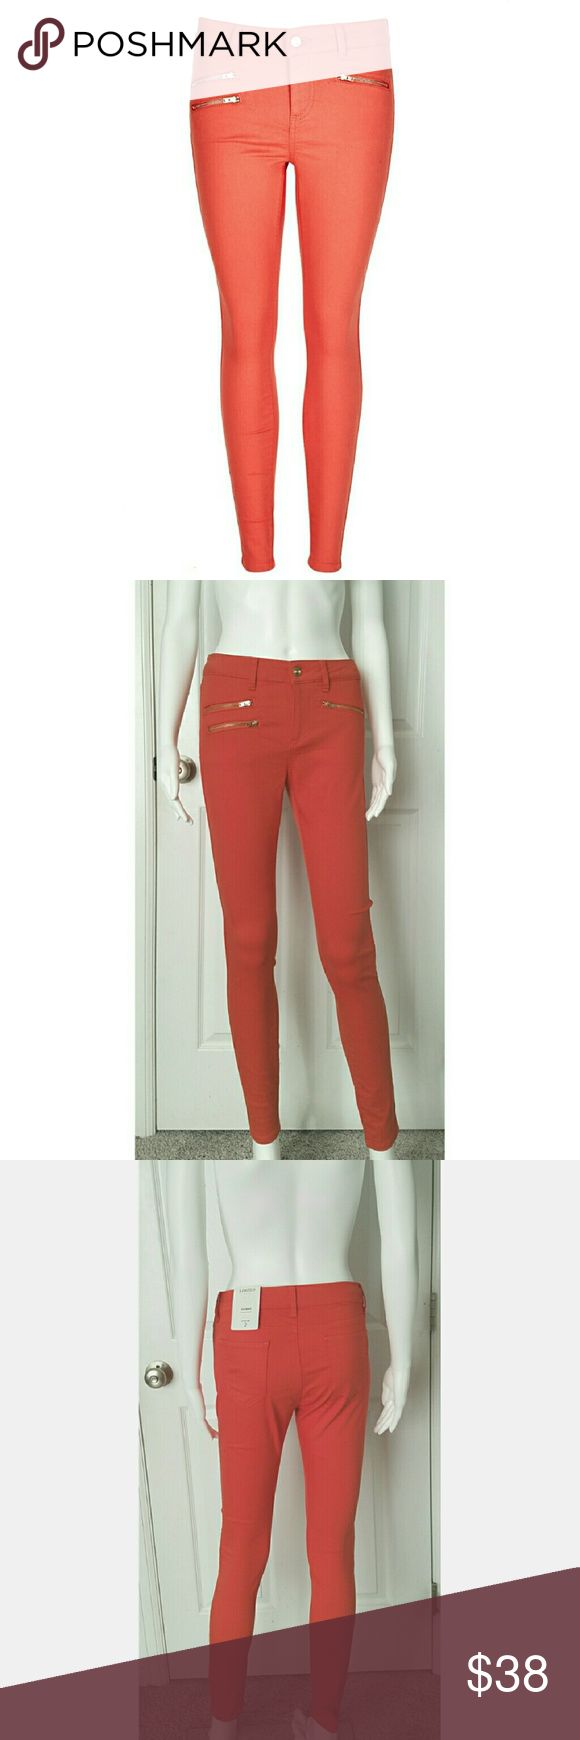 """Deep coral zippered skinny ankle jean Deep coral (red orange) skinny jean (jegging) with rose gold toned zippers. Top pocket on both sides functioning, lower pocket on one side is decorative. Matching fly zipper & button. Have a slight washed look. Attention these are labeled UK (I imported them). The size you select for purchase will be the US converted sizes but when you receive the item it will have the UK size on the label (2 sizes up). Inseam is approx 29.25"""" reg. NO TRADES Marks…"""